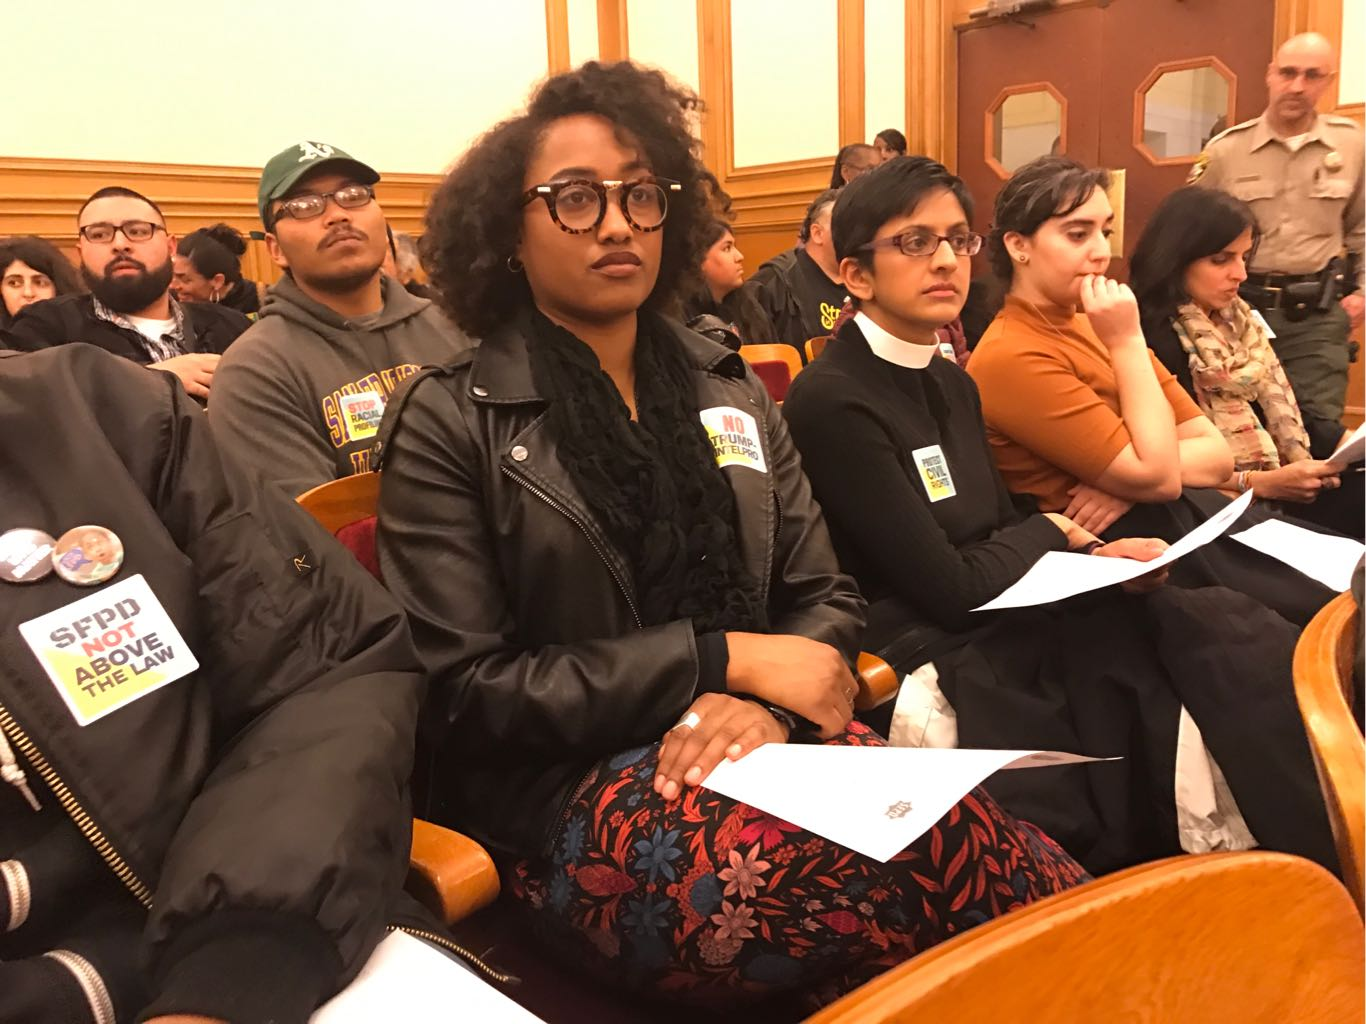 """people at city council meeting with stickers that say """"SFPD not above the law"""""""